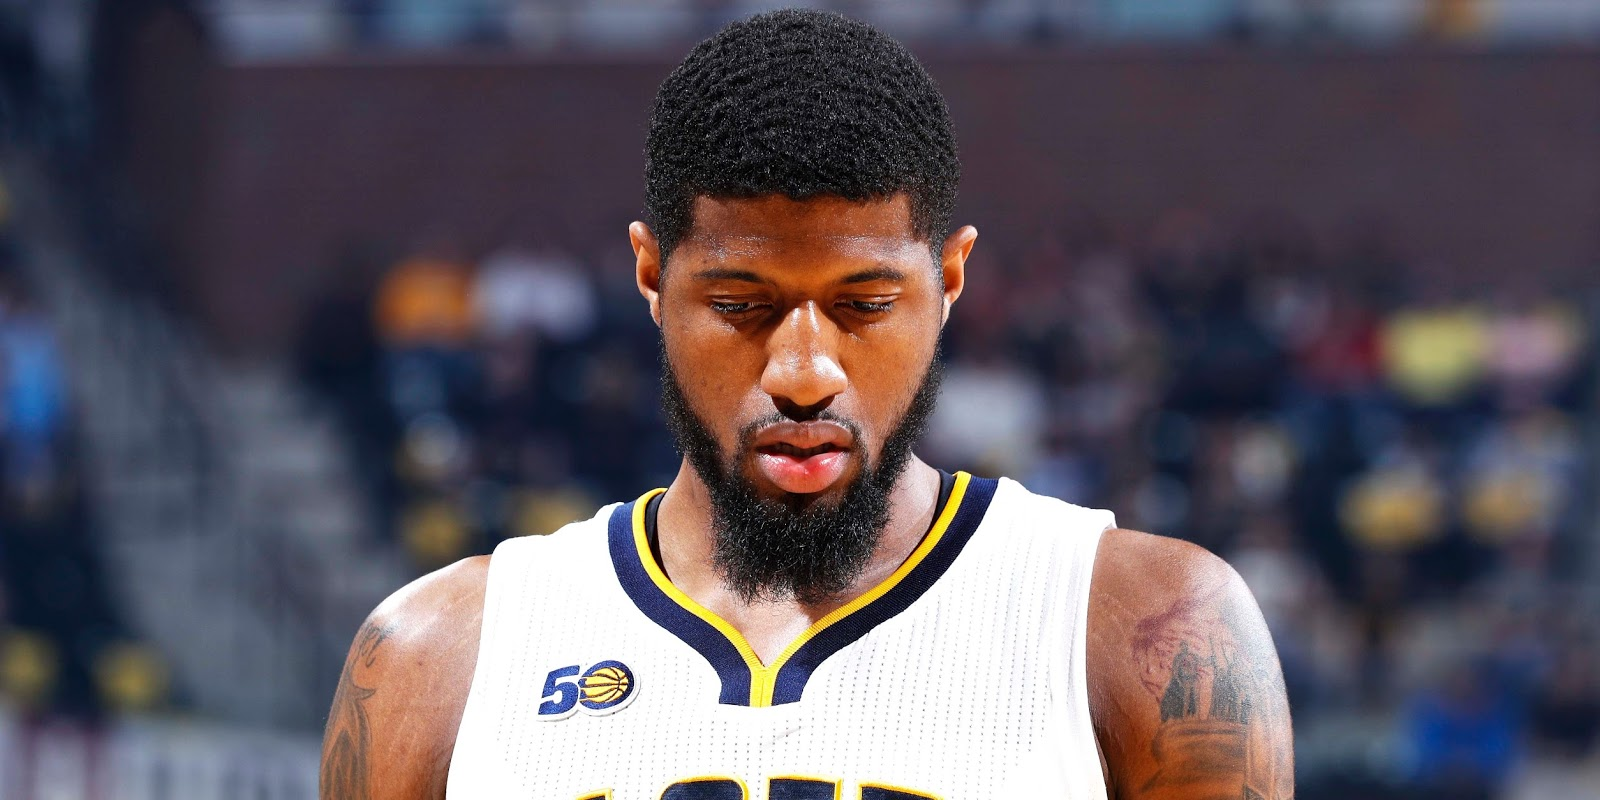 paul george puede aportar mucho a Oklahoma Thunder